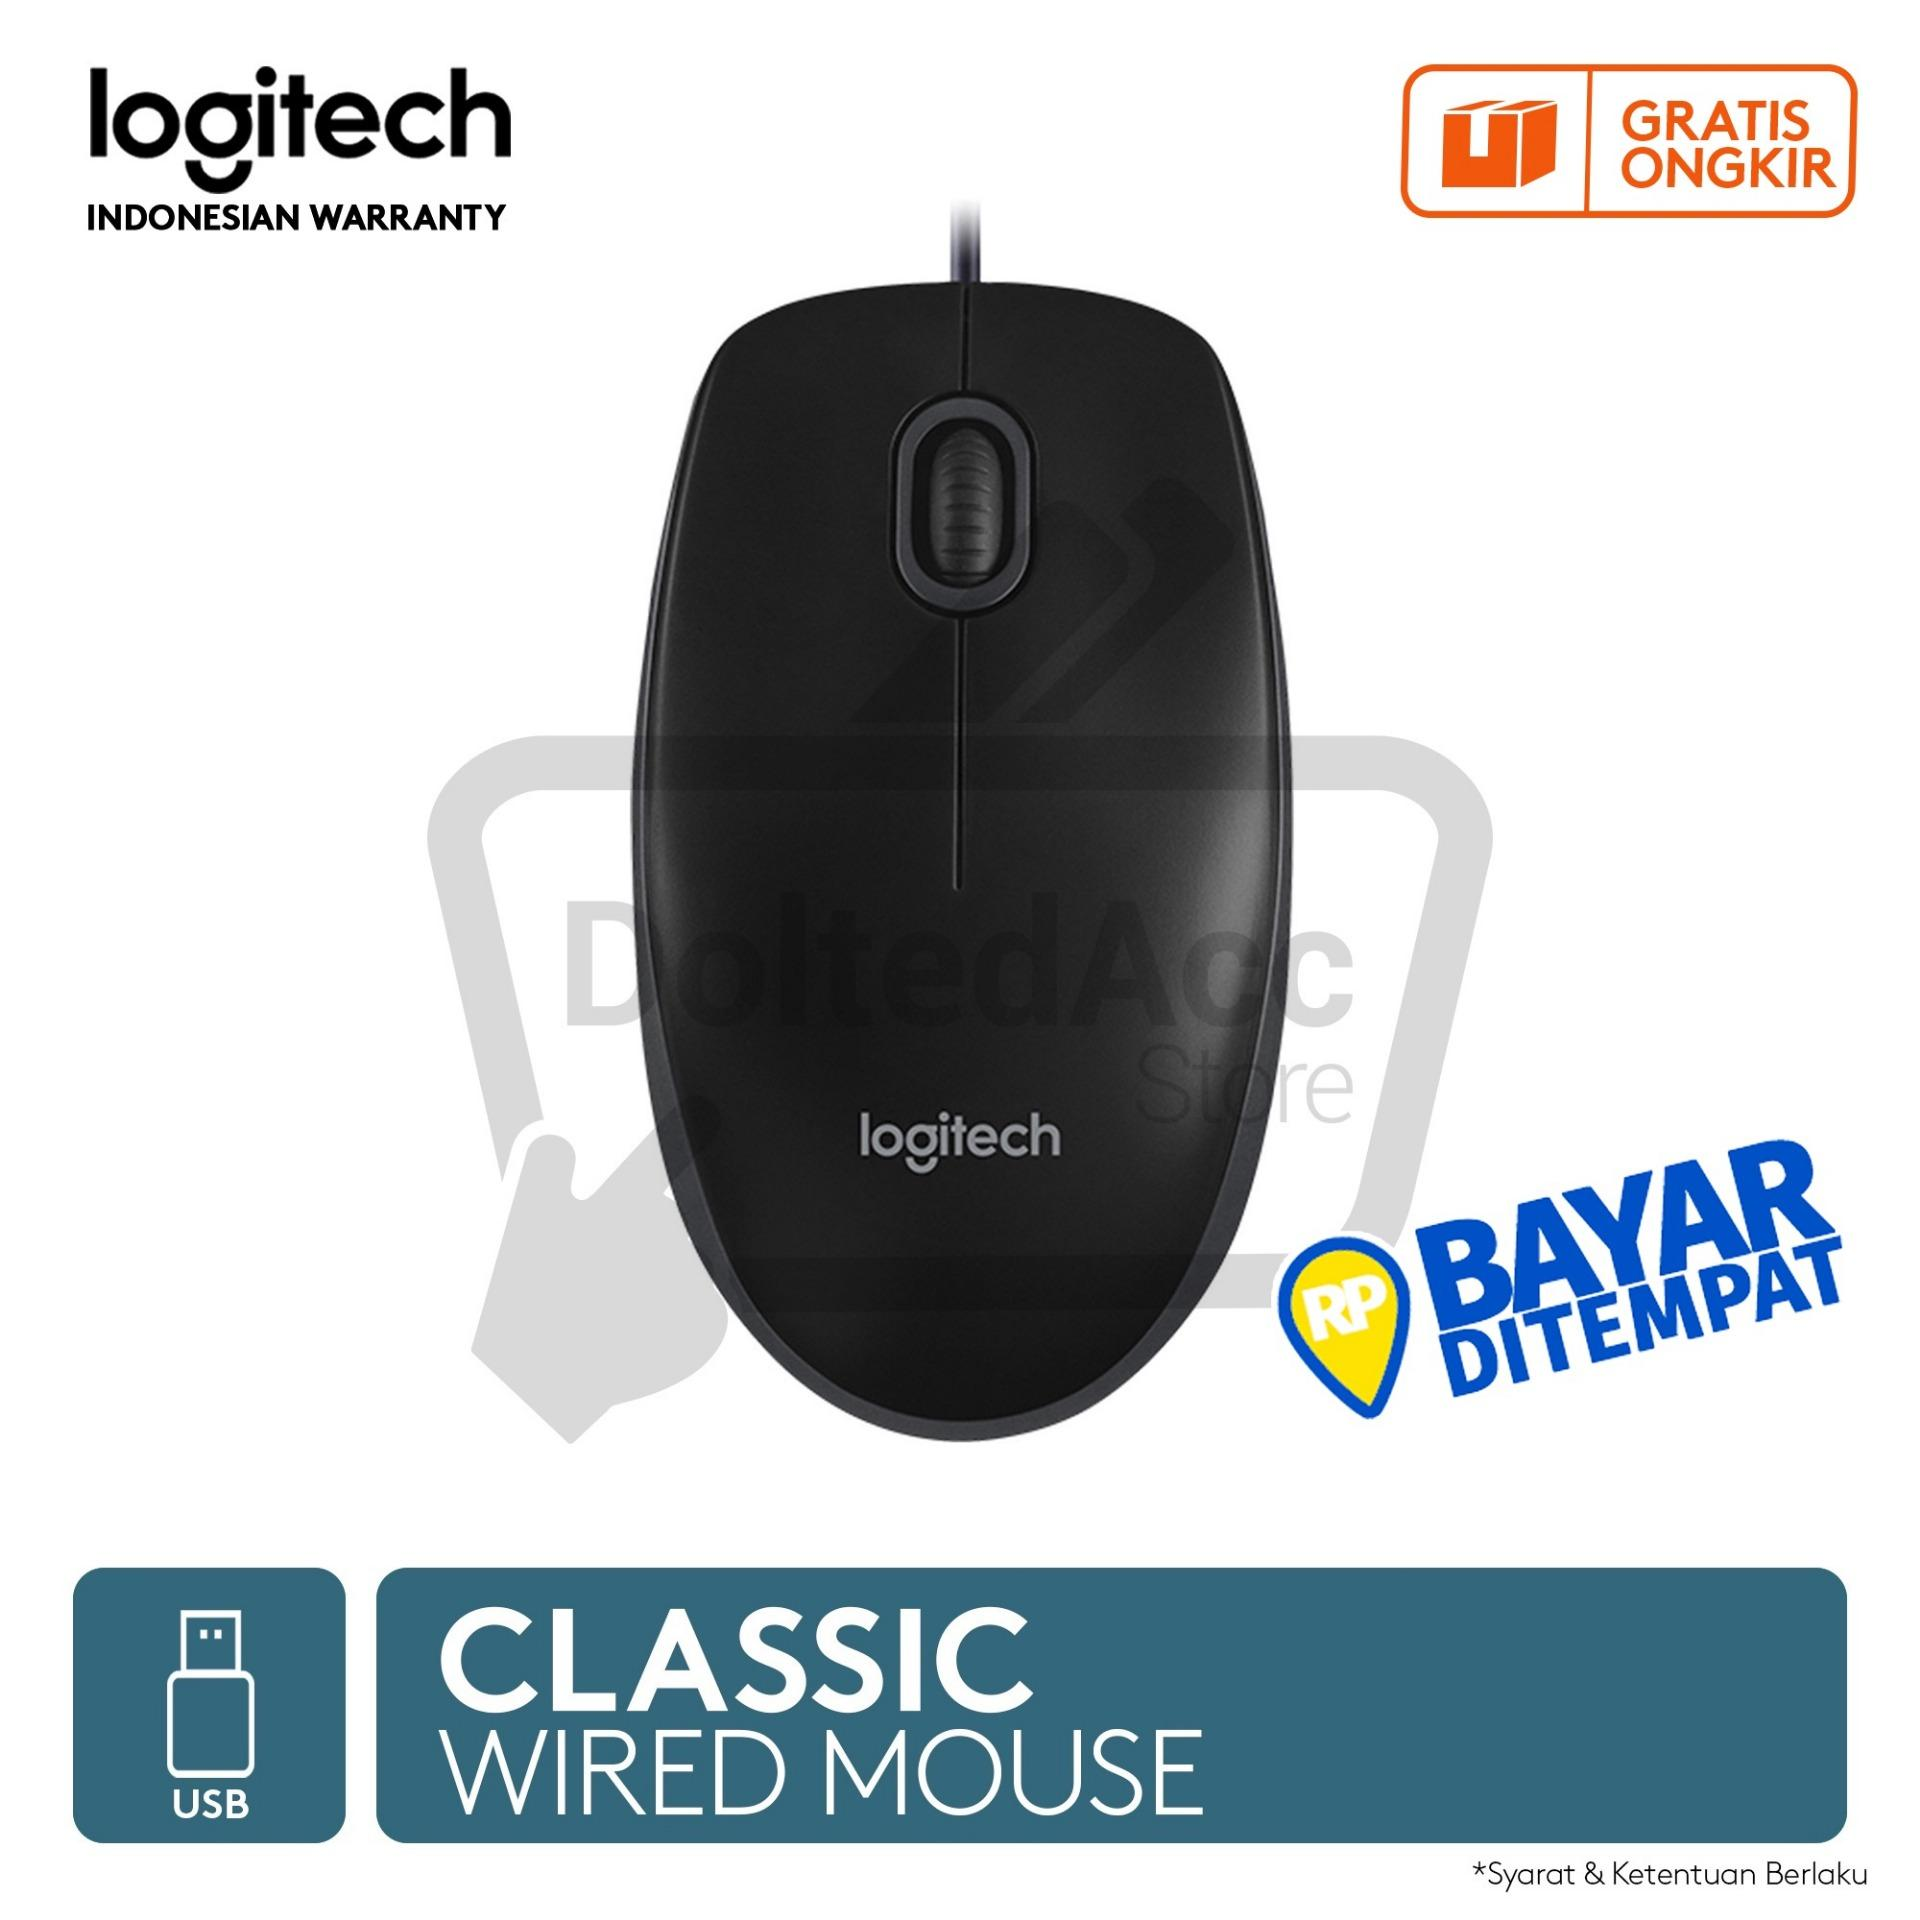 Hp Gaming Mouse M100 7 Led - Hitam. By Jet Store